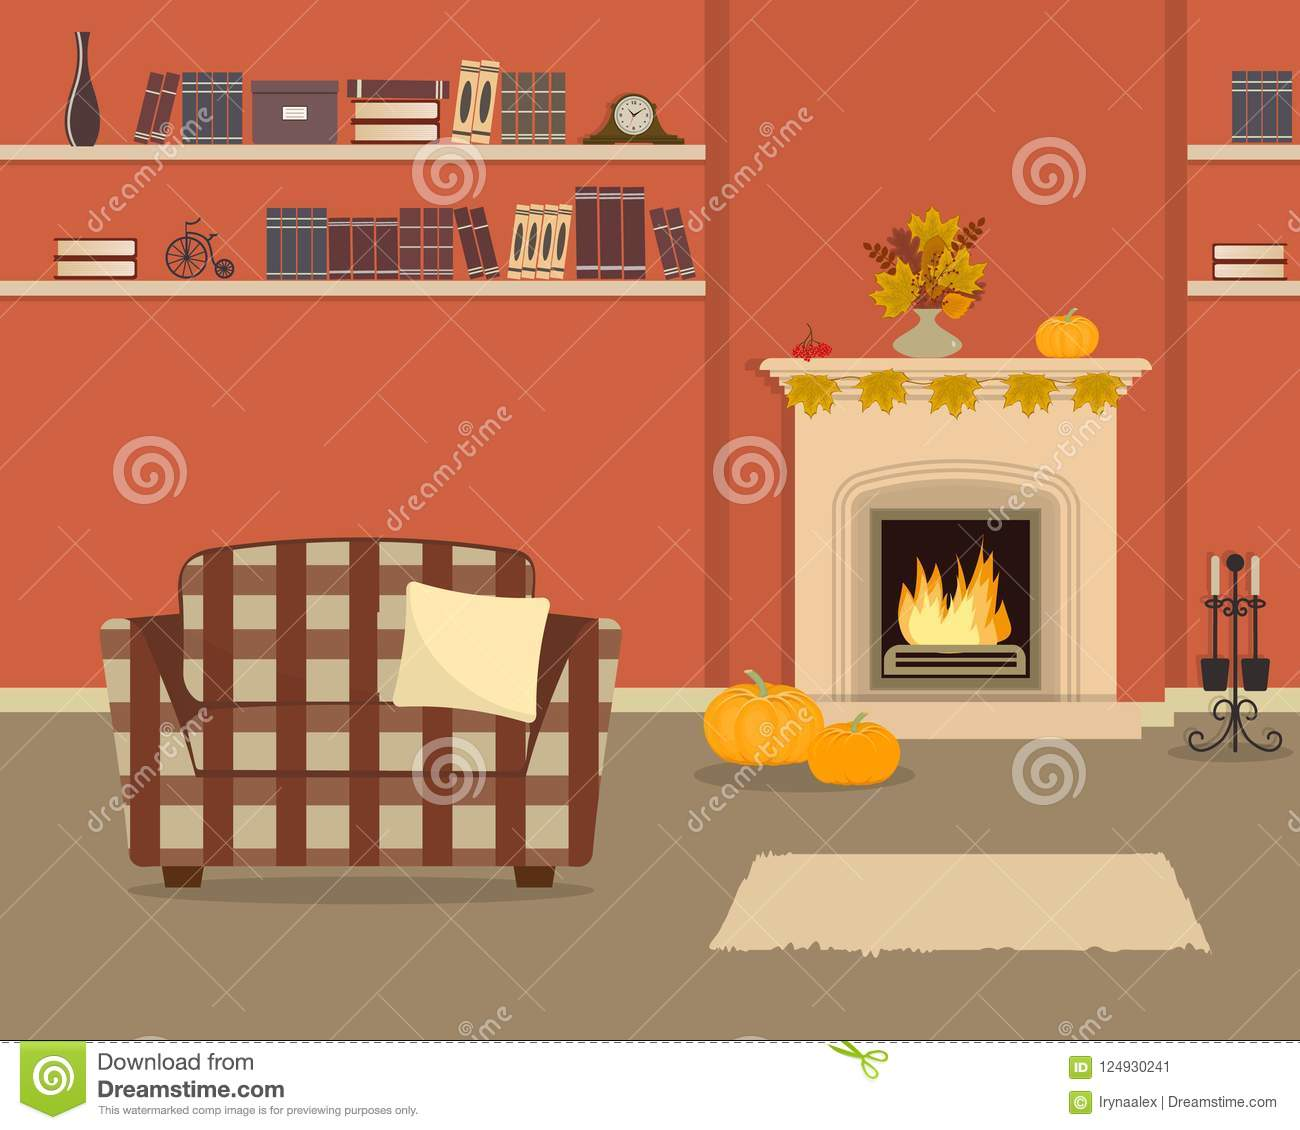 Orange Living Room With Fireplace. Autumn Decor In The ...